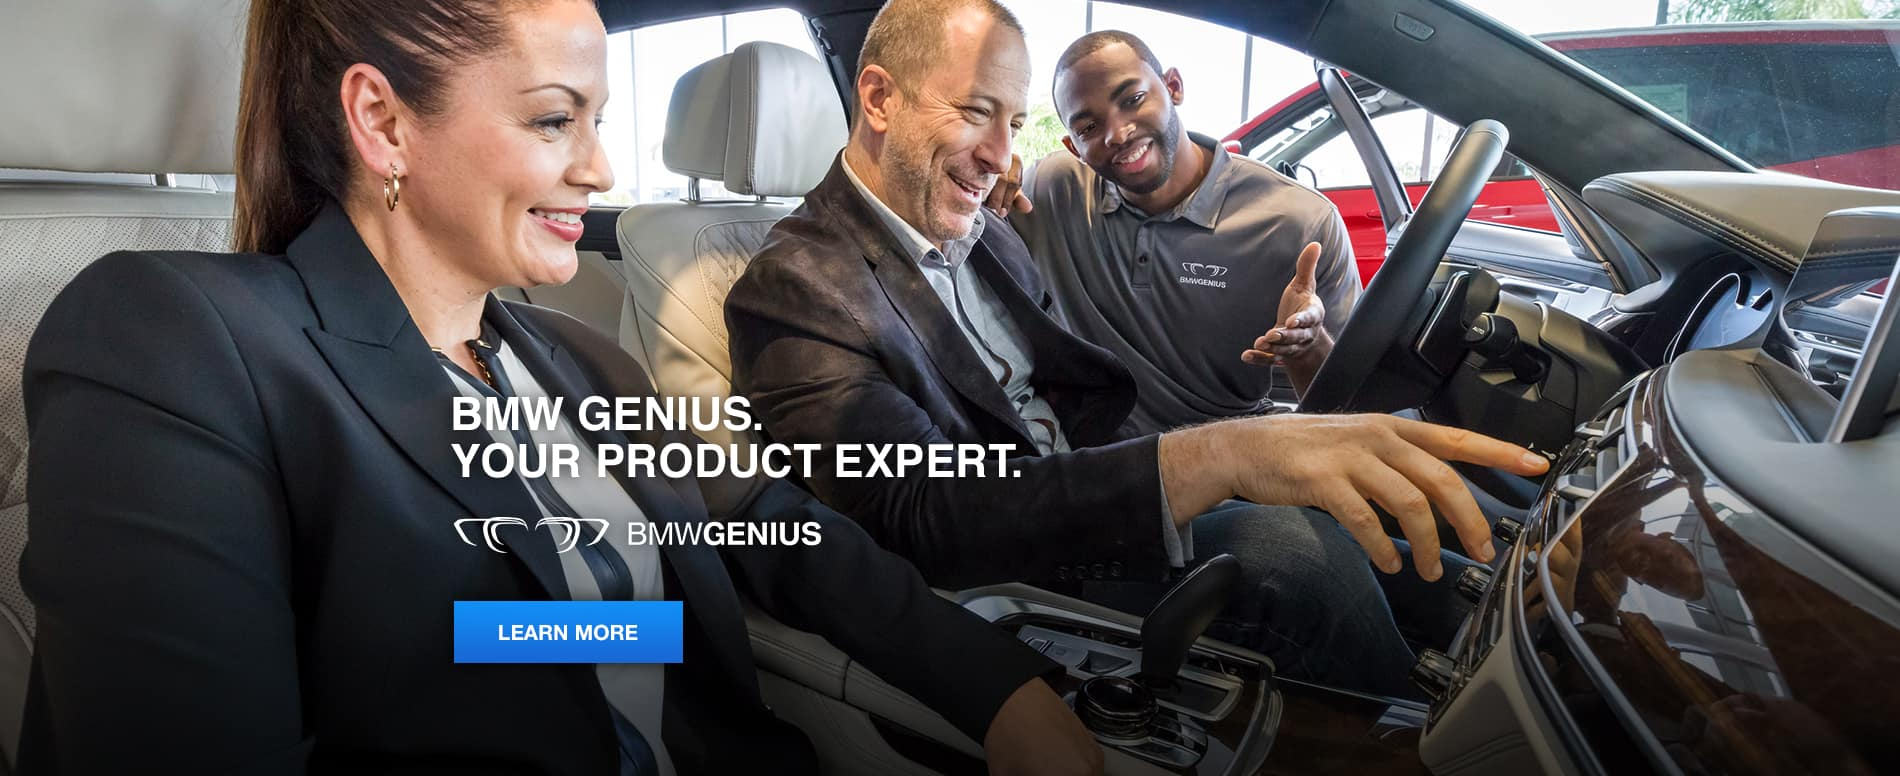 BMW Genius - Your Product Expert